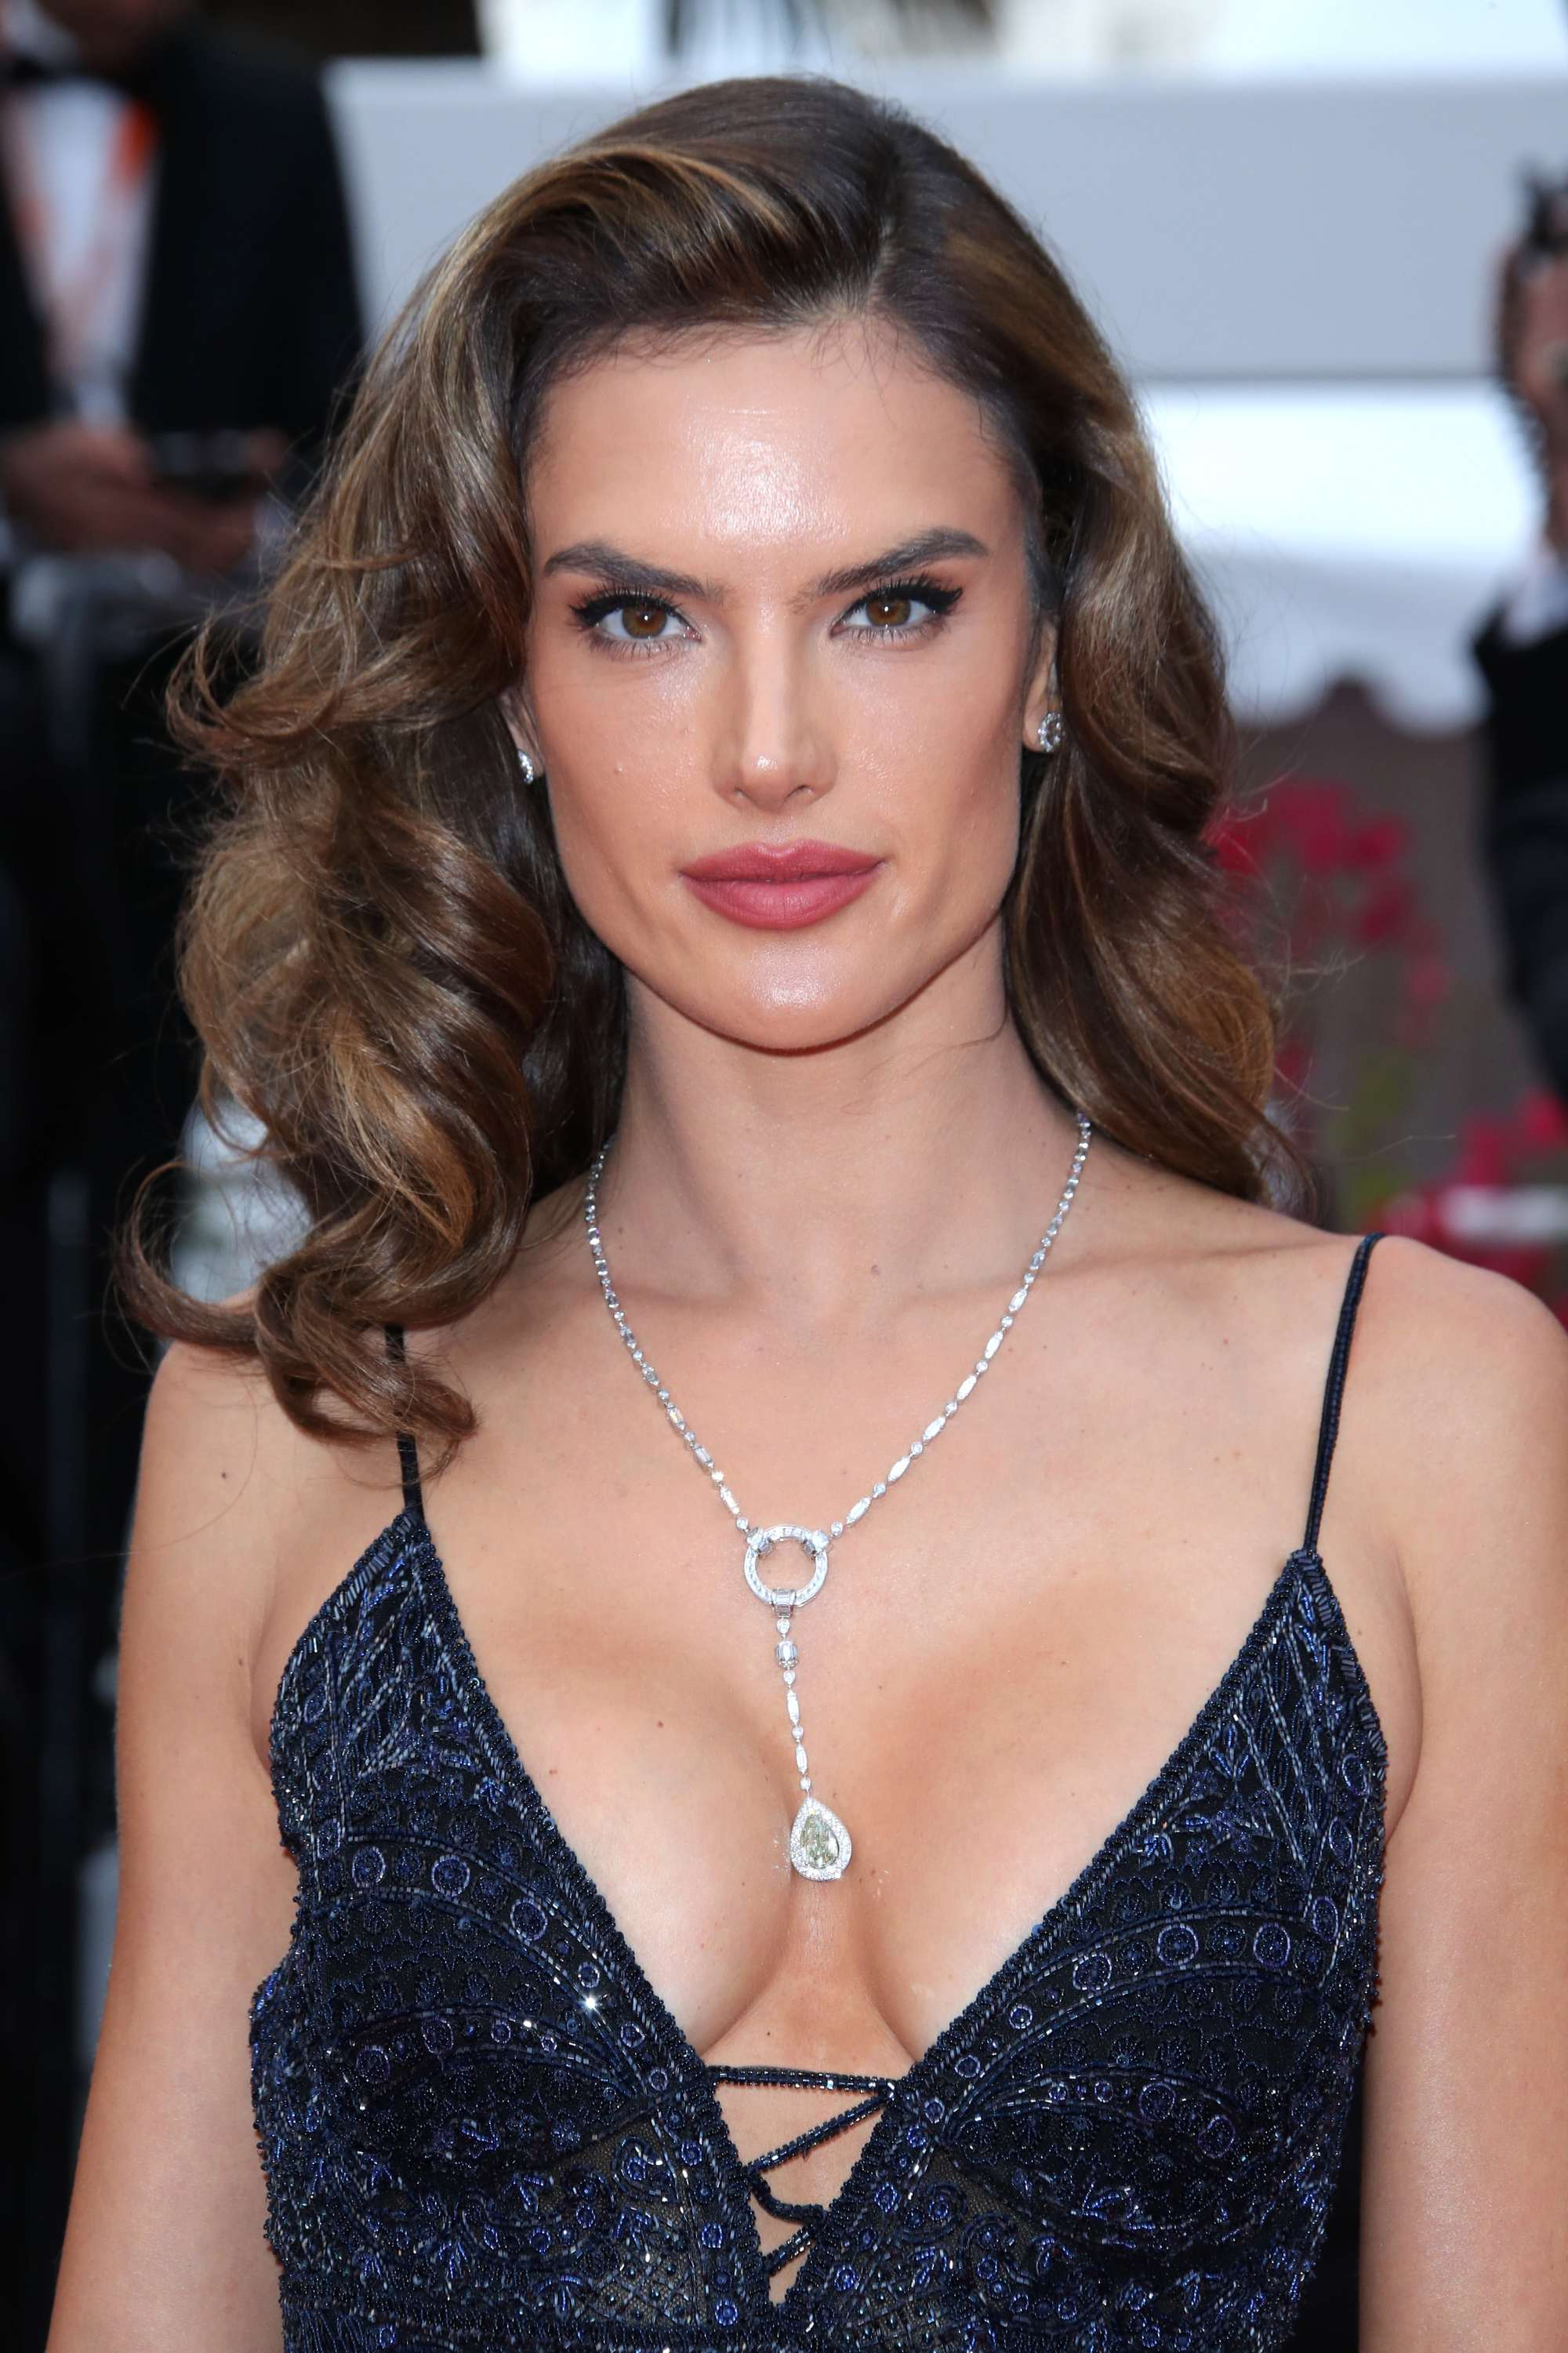 Vintage hairstyles for long hair: Close up shot of Alessandra Ambrosio with long chestnut brown styled into retro Hollywood waves, wearing midnight blue dress on the red carpet